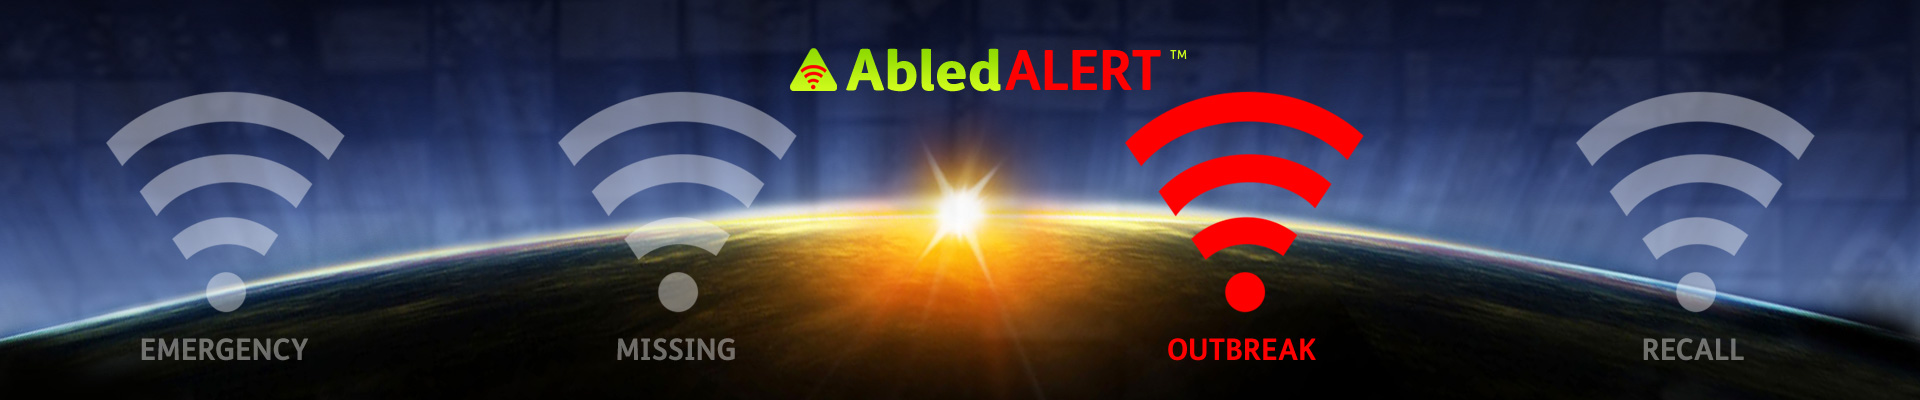 AbledALert Banner with the alert signal for Outbreak highlighted.